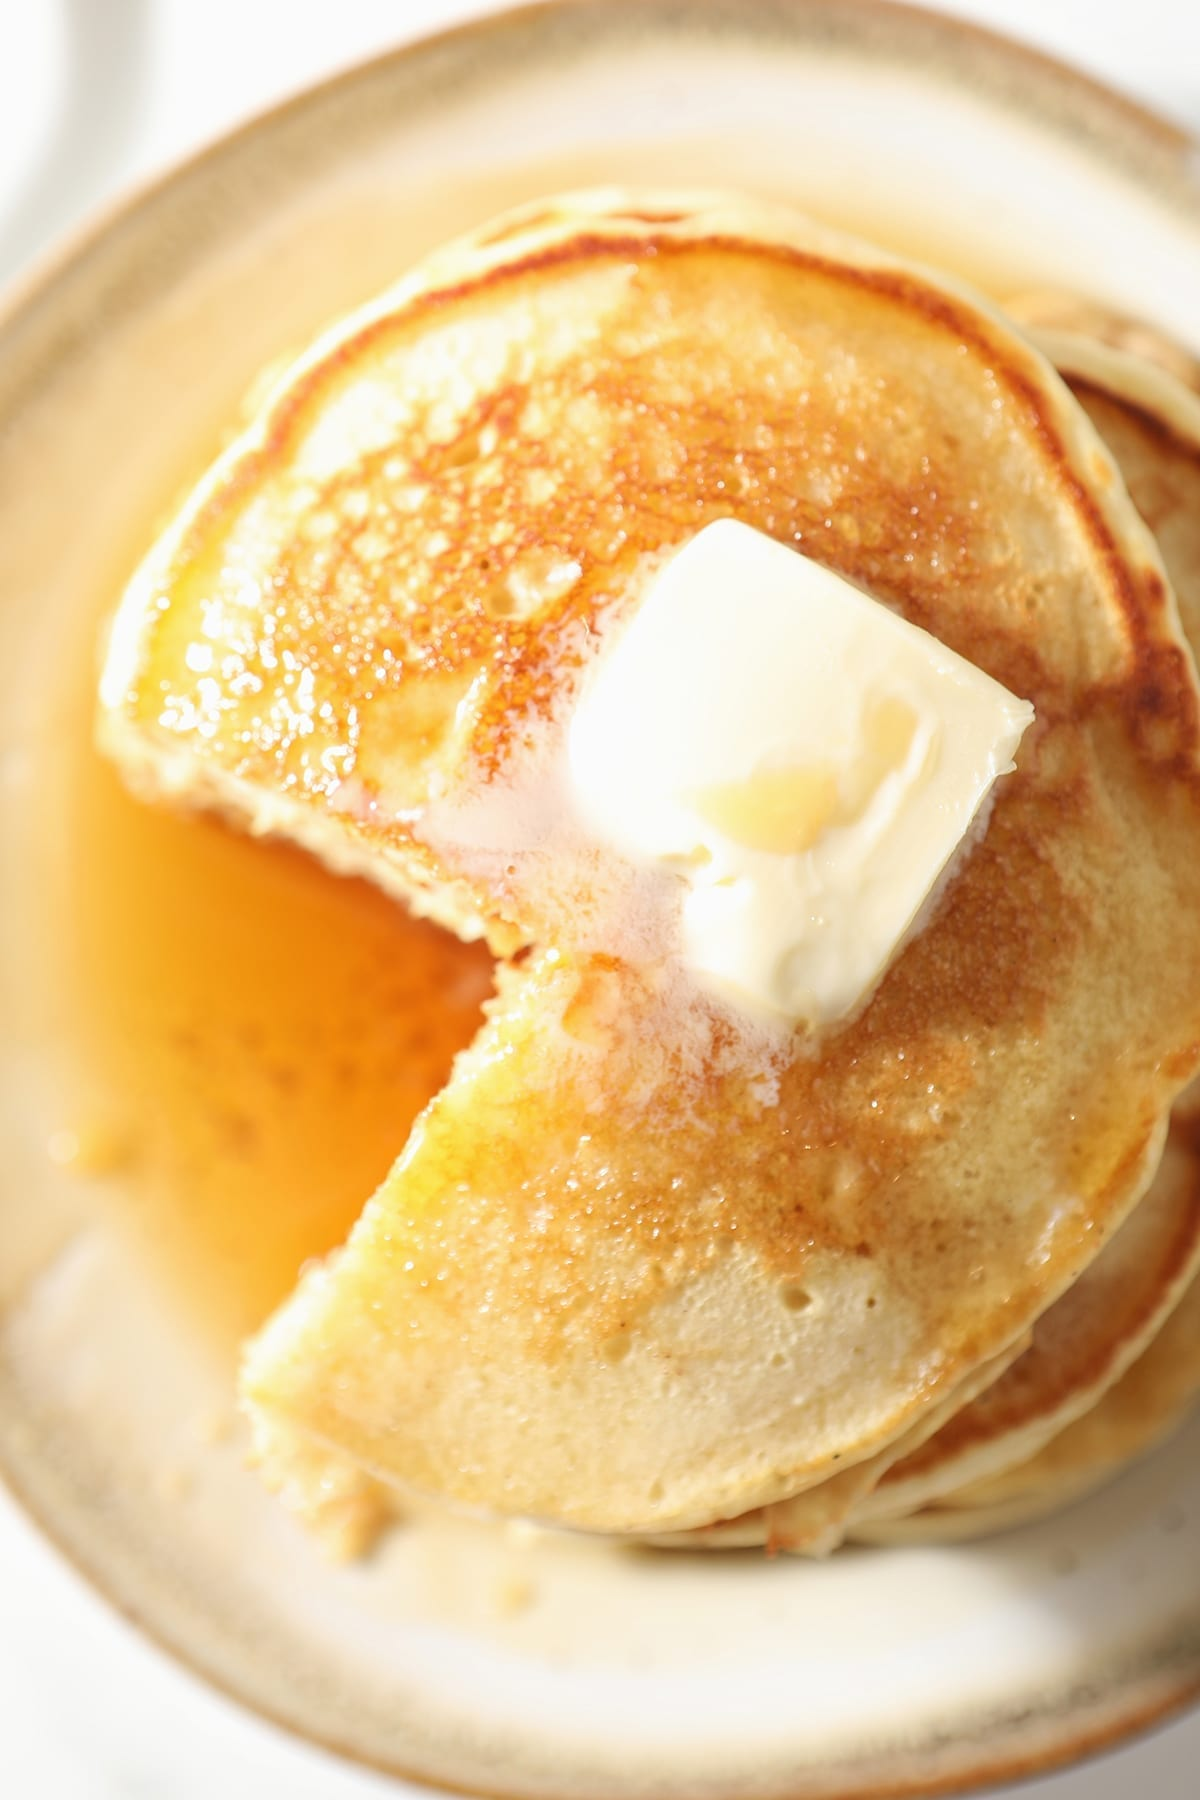 Close up of a stack of pancakes, with a wedge cut out of it, with butter and syrup on top